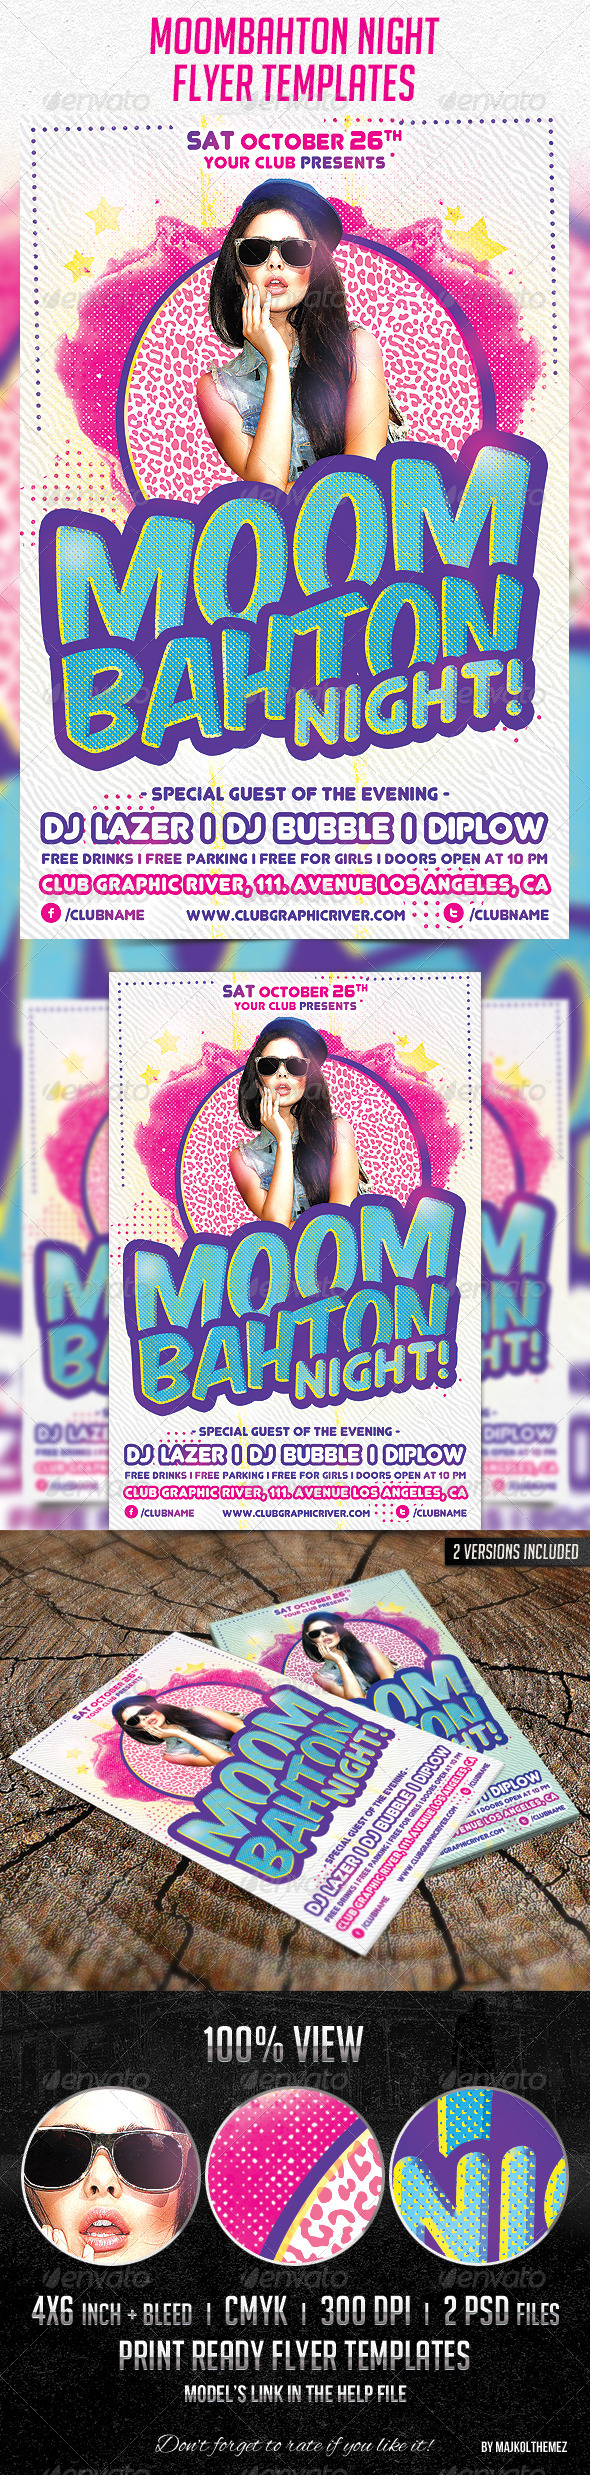 Moombahton Night Flyer Template - Clubs & Parties Events